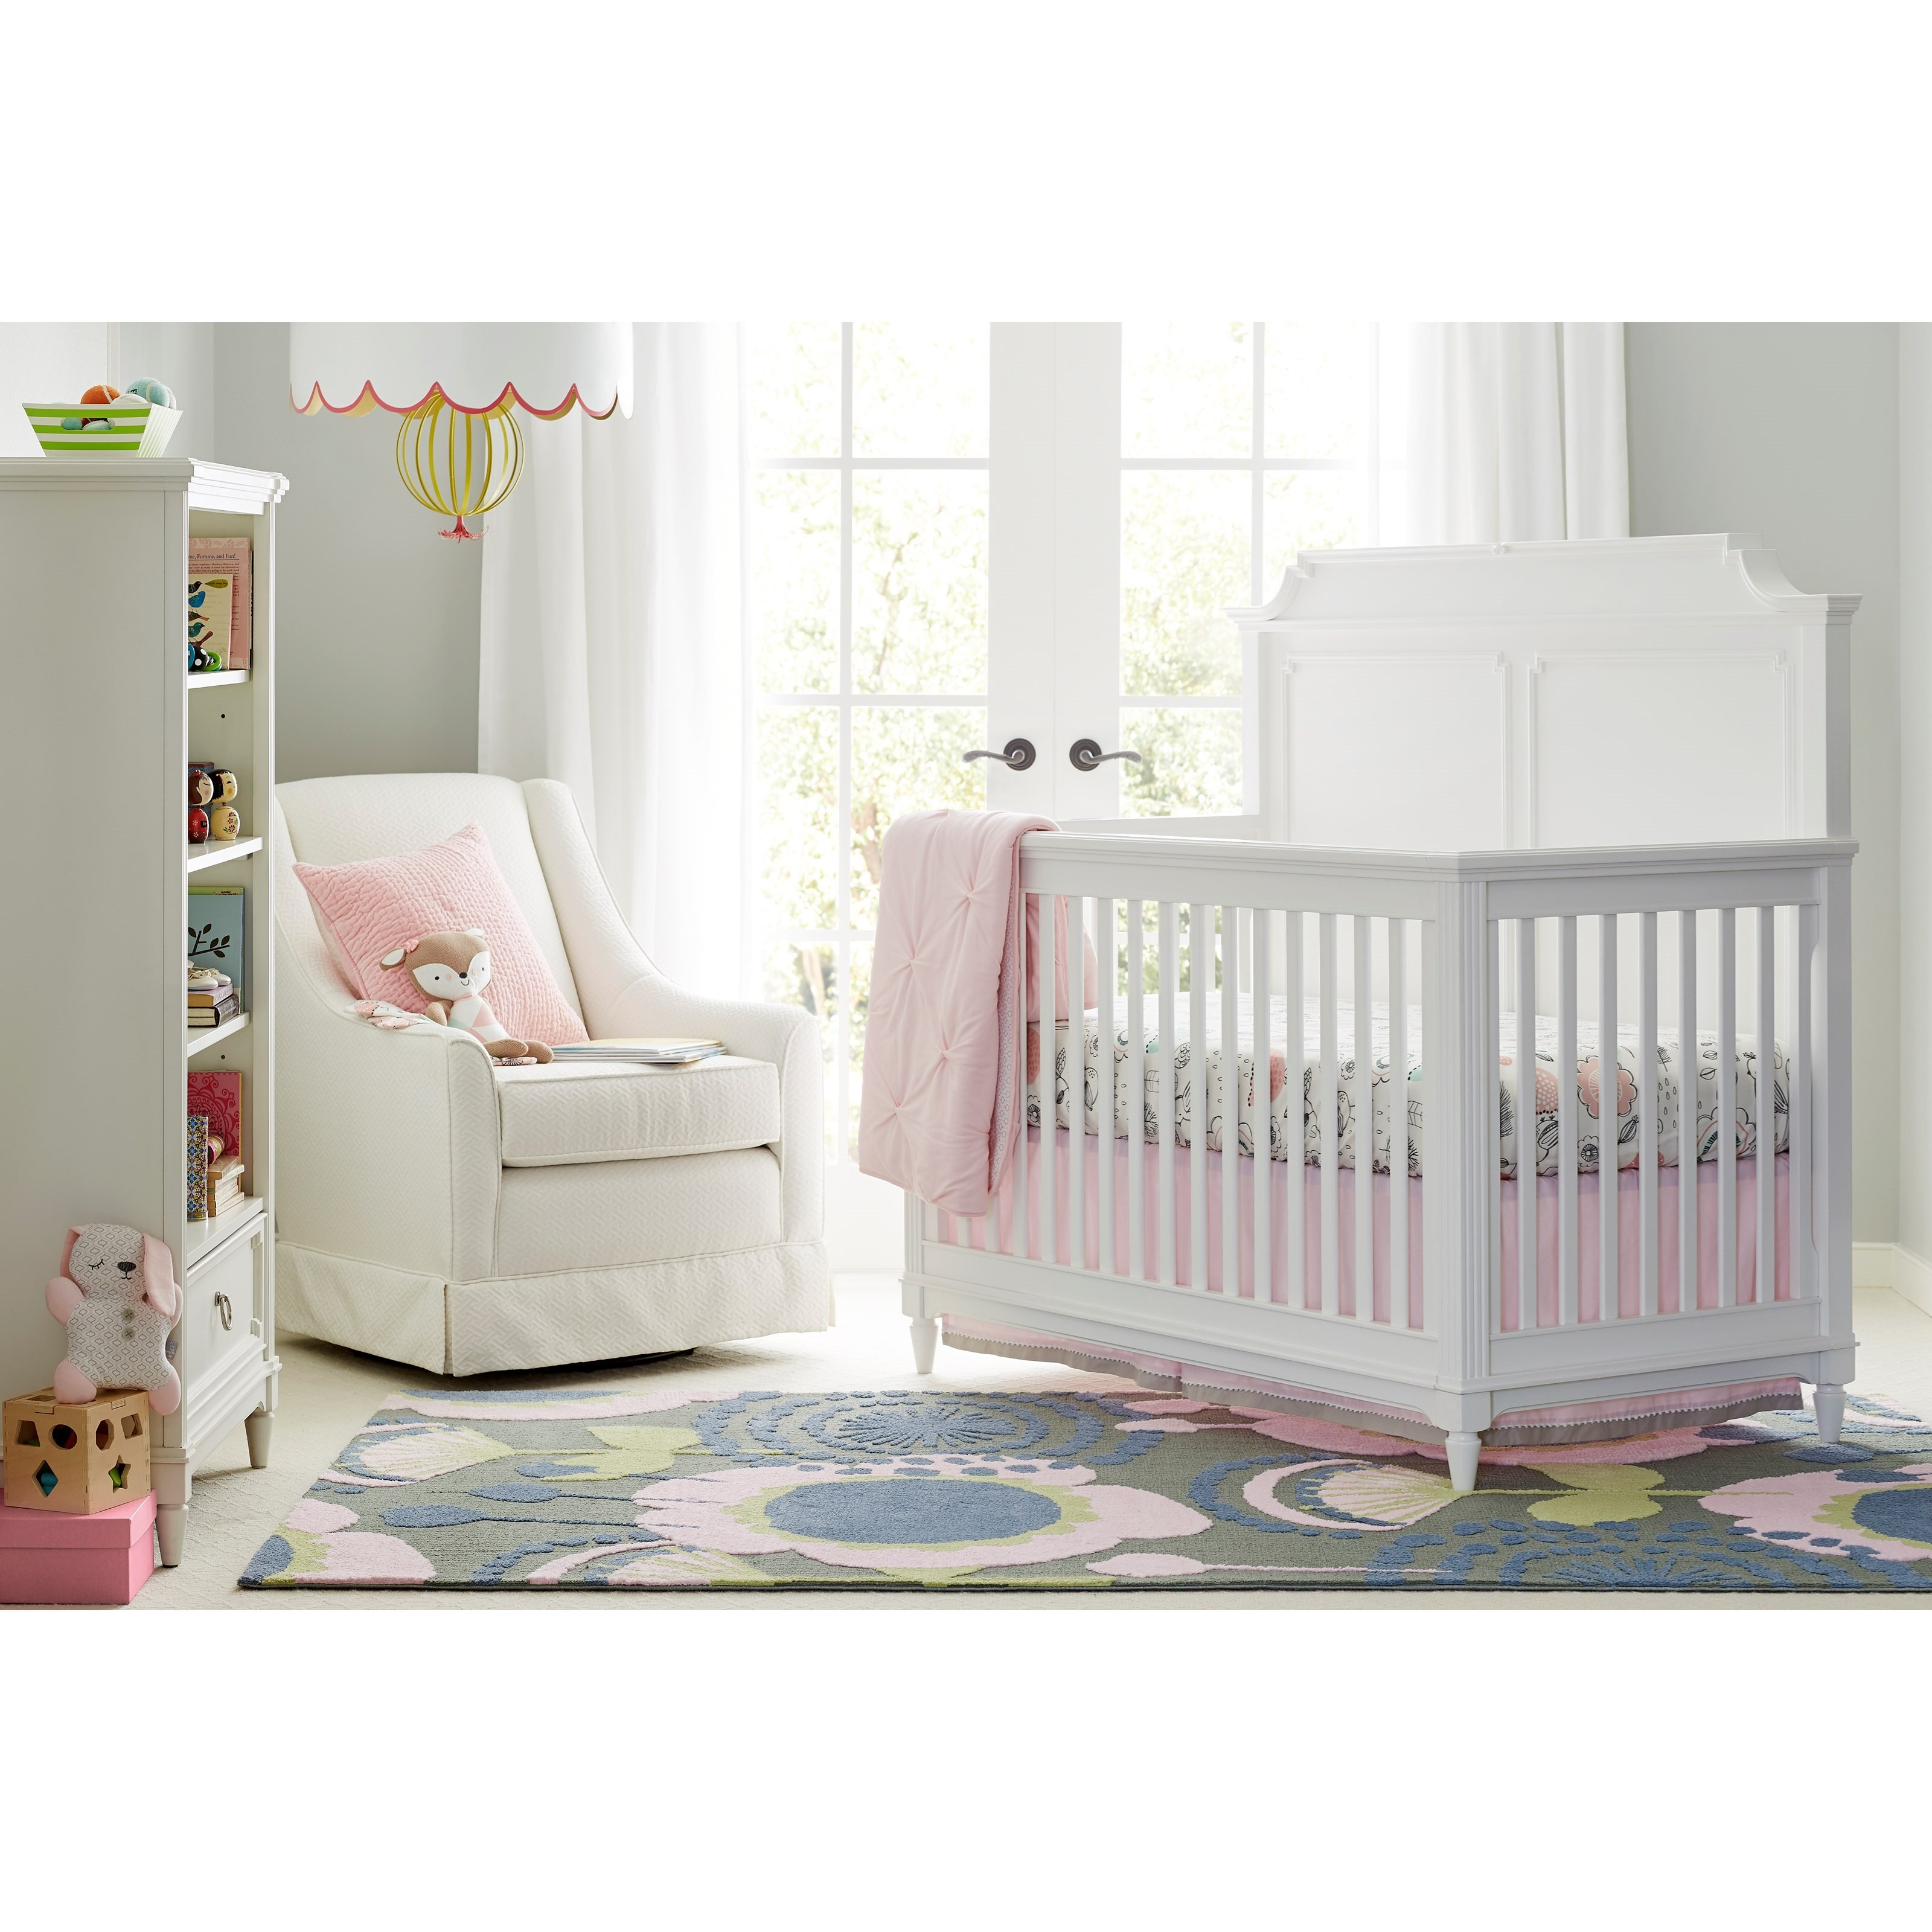 Stone & Leigh Furniture Clementine Court Crib Bedroom Group - Item Number: 537-23 C Bedroom Group 2